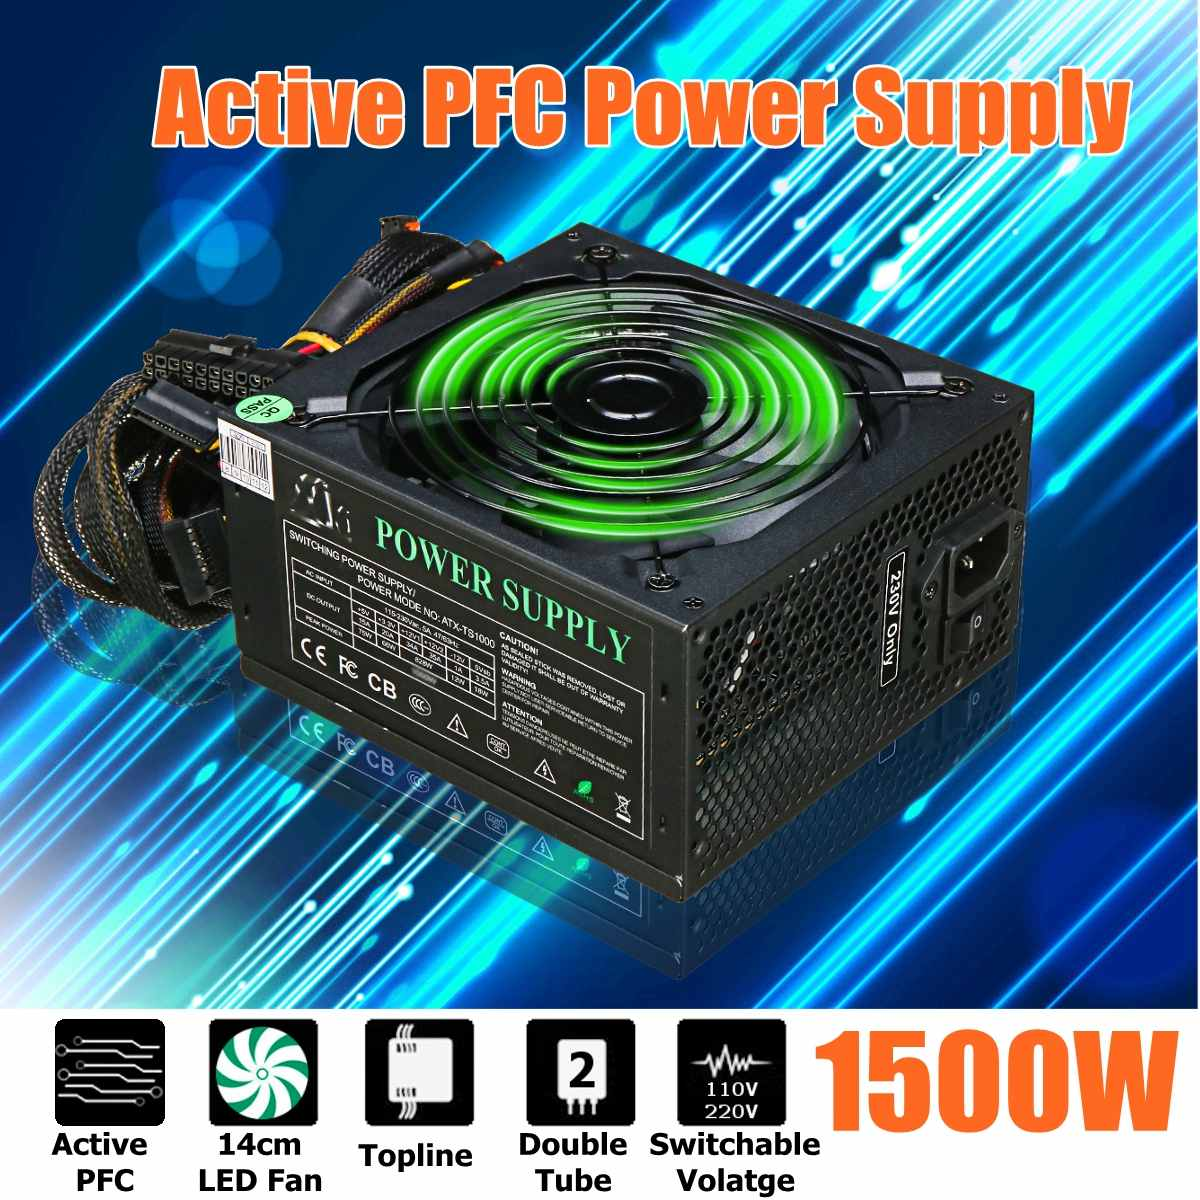 LEORY 1500W PC PSU Power Supply Active PFC 24Pin SATA LED Hydraulic 140mm Fan 80 Plus Computer Power Supply For BTC